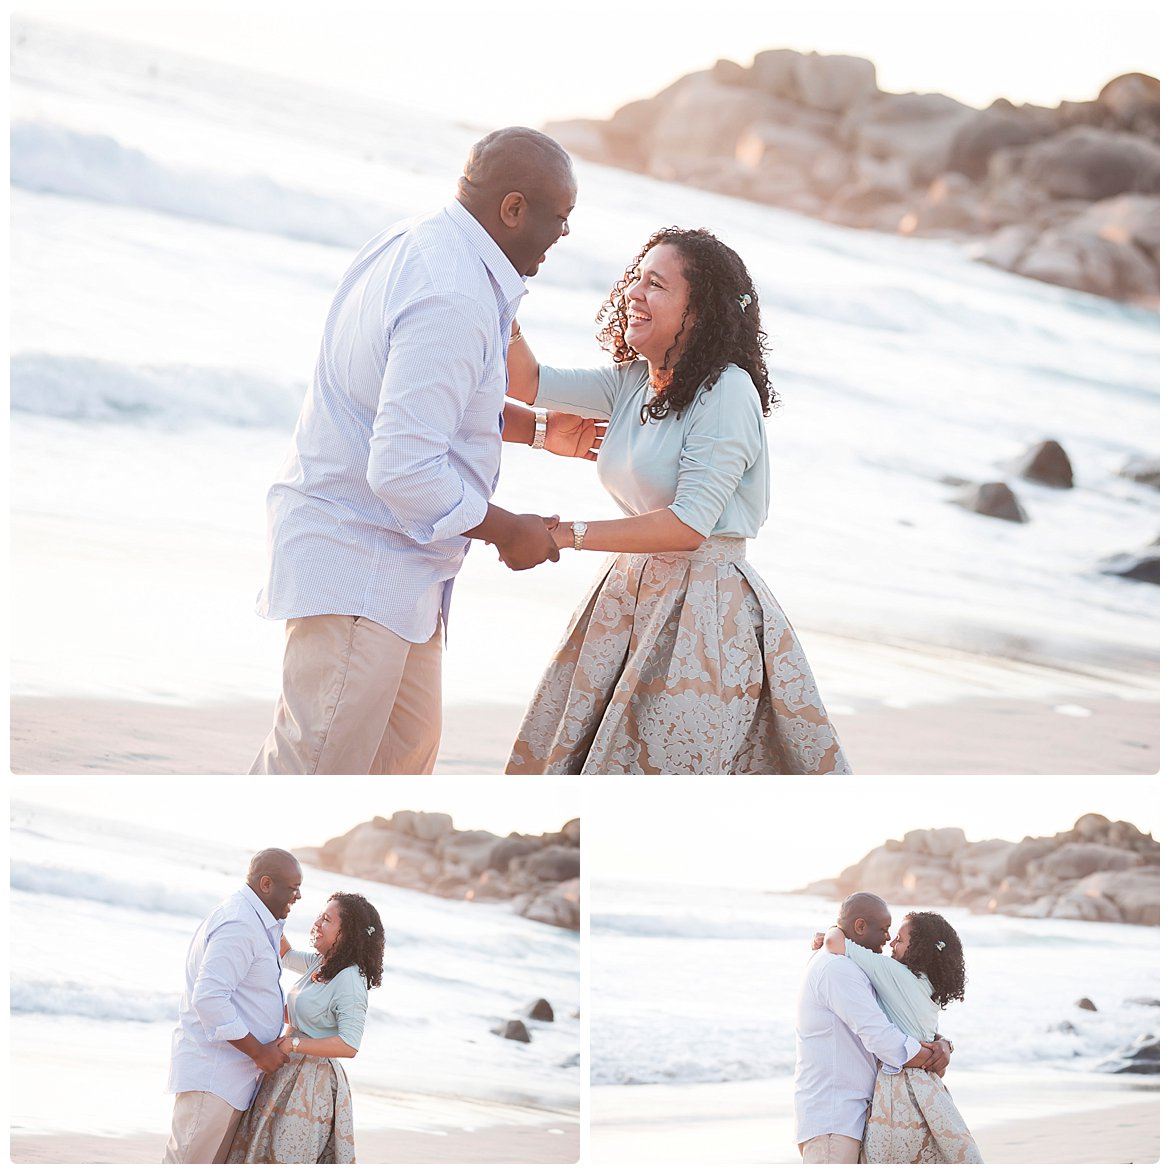 couple-portraits-shoot-cape-town-photographer-joanne-markland-WT-0018